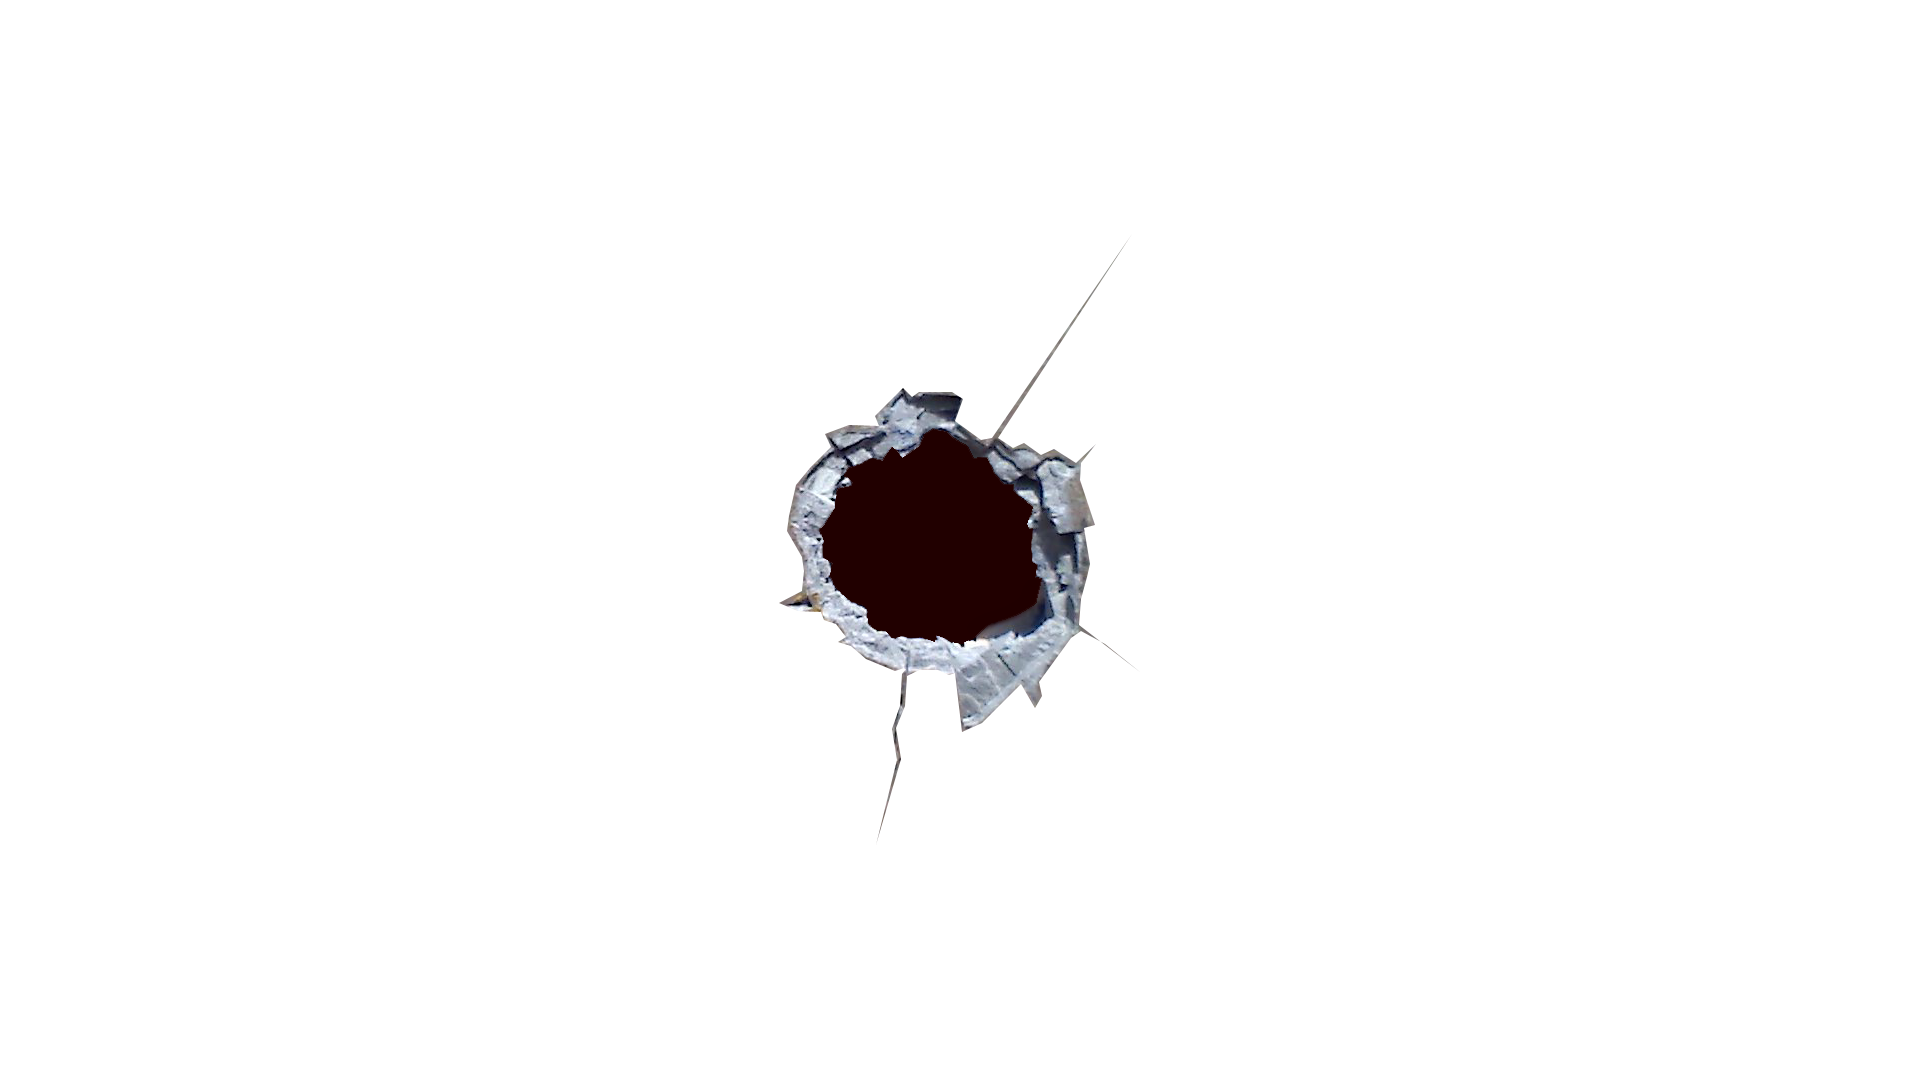 Blood hole png. Bullet holes images free